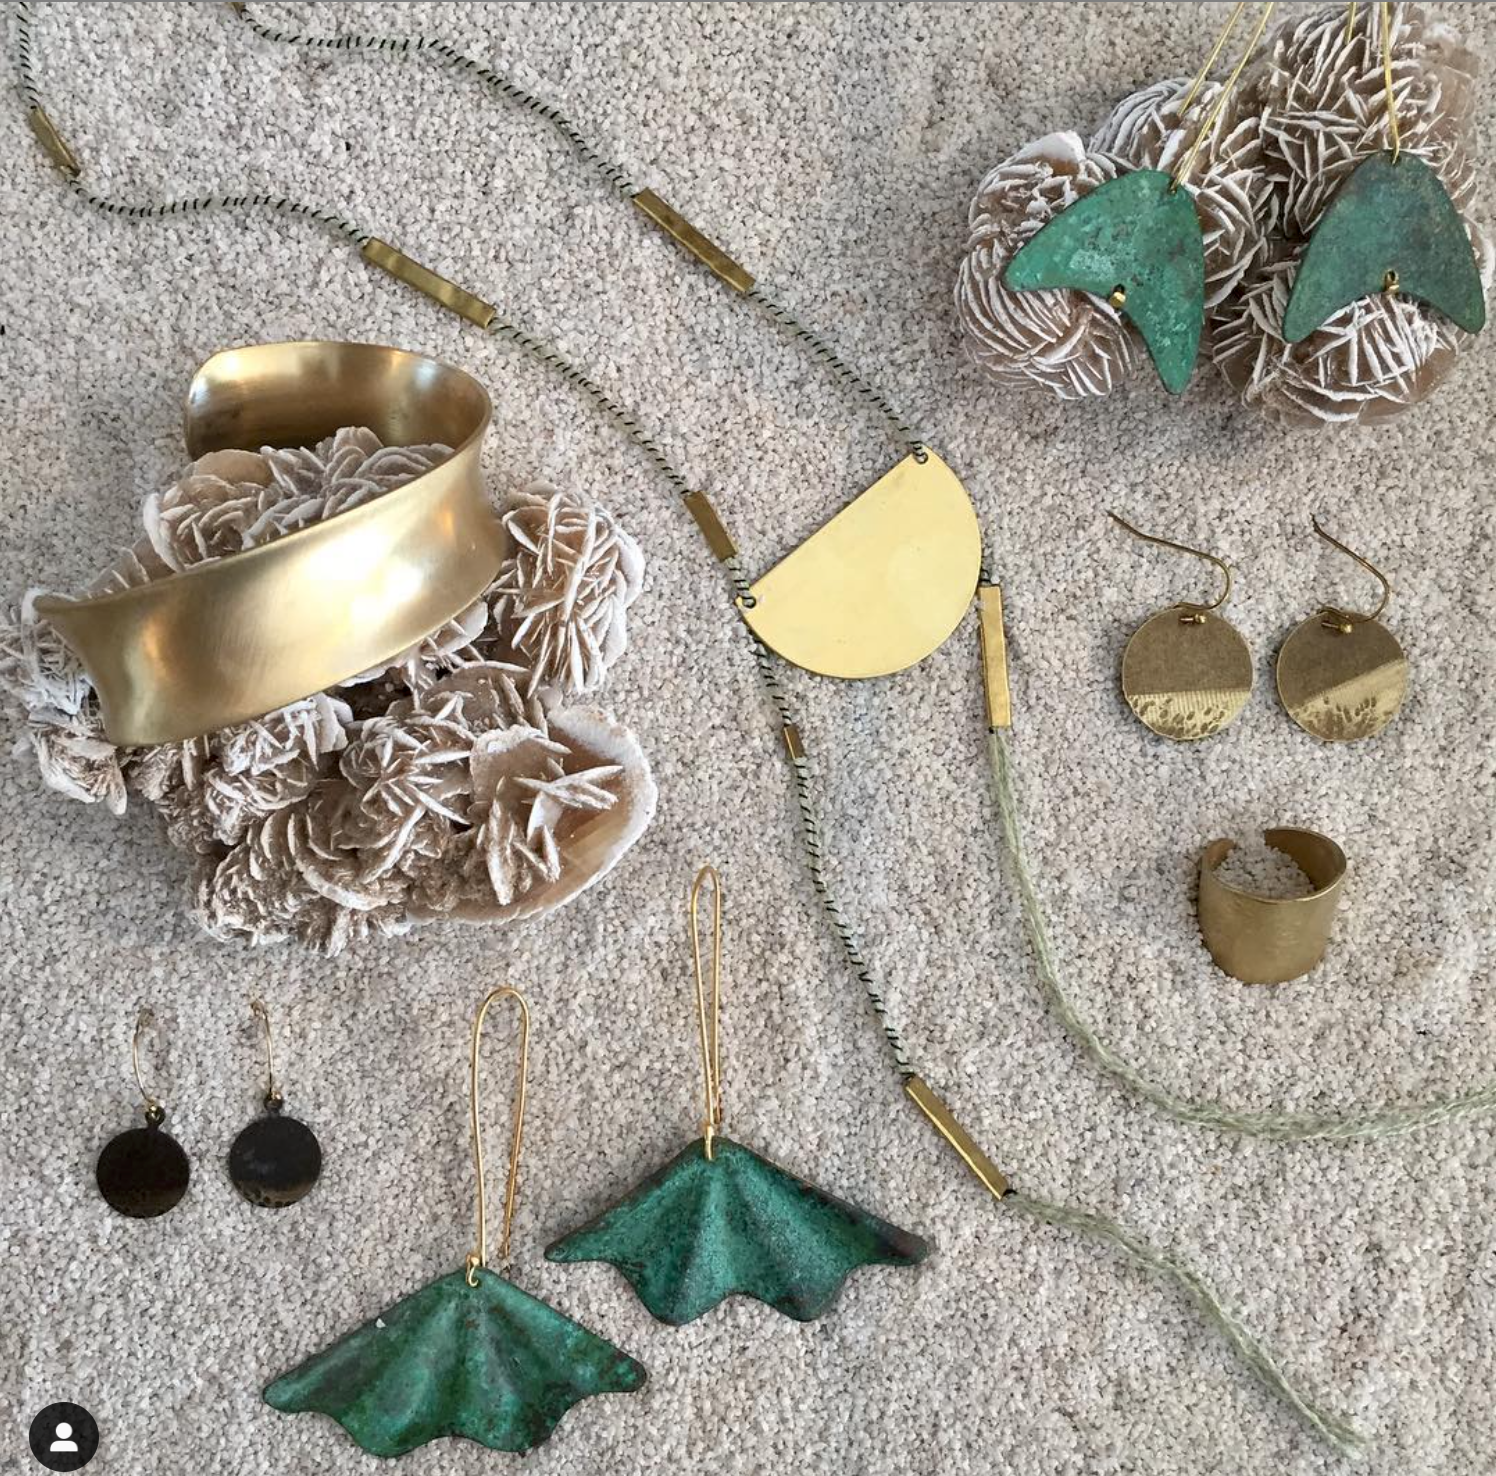 A selection of handmade Maddalena Bearzi metal and textile pieces displayed on sand and desert rose crystals for a beautiful and unique display-case. This jewelry is available at Dacha and in our online shop. Image: ©Dacha